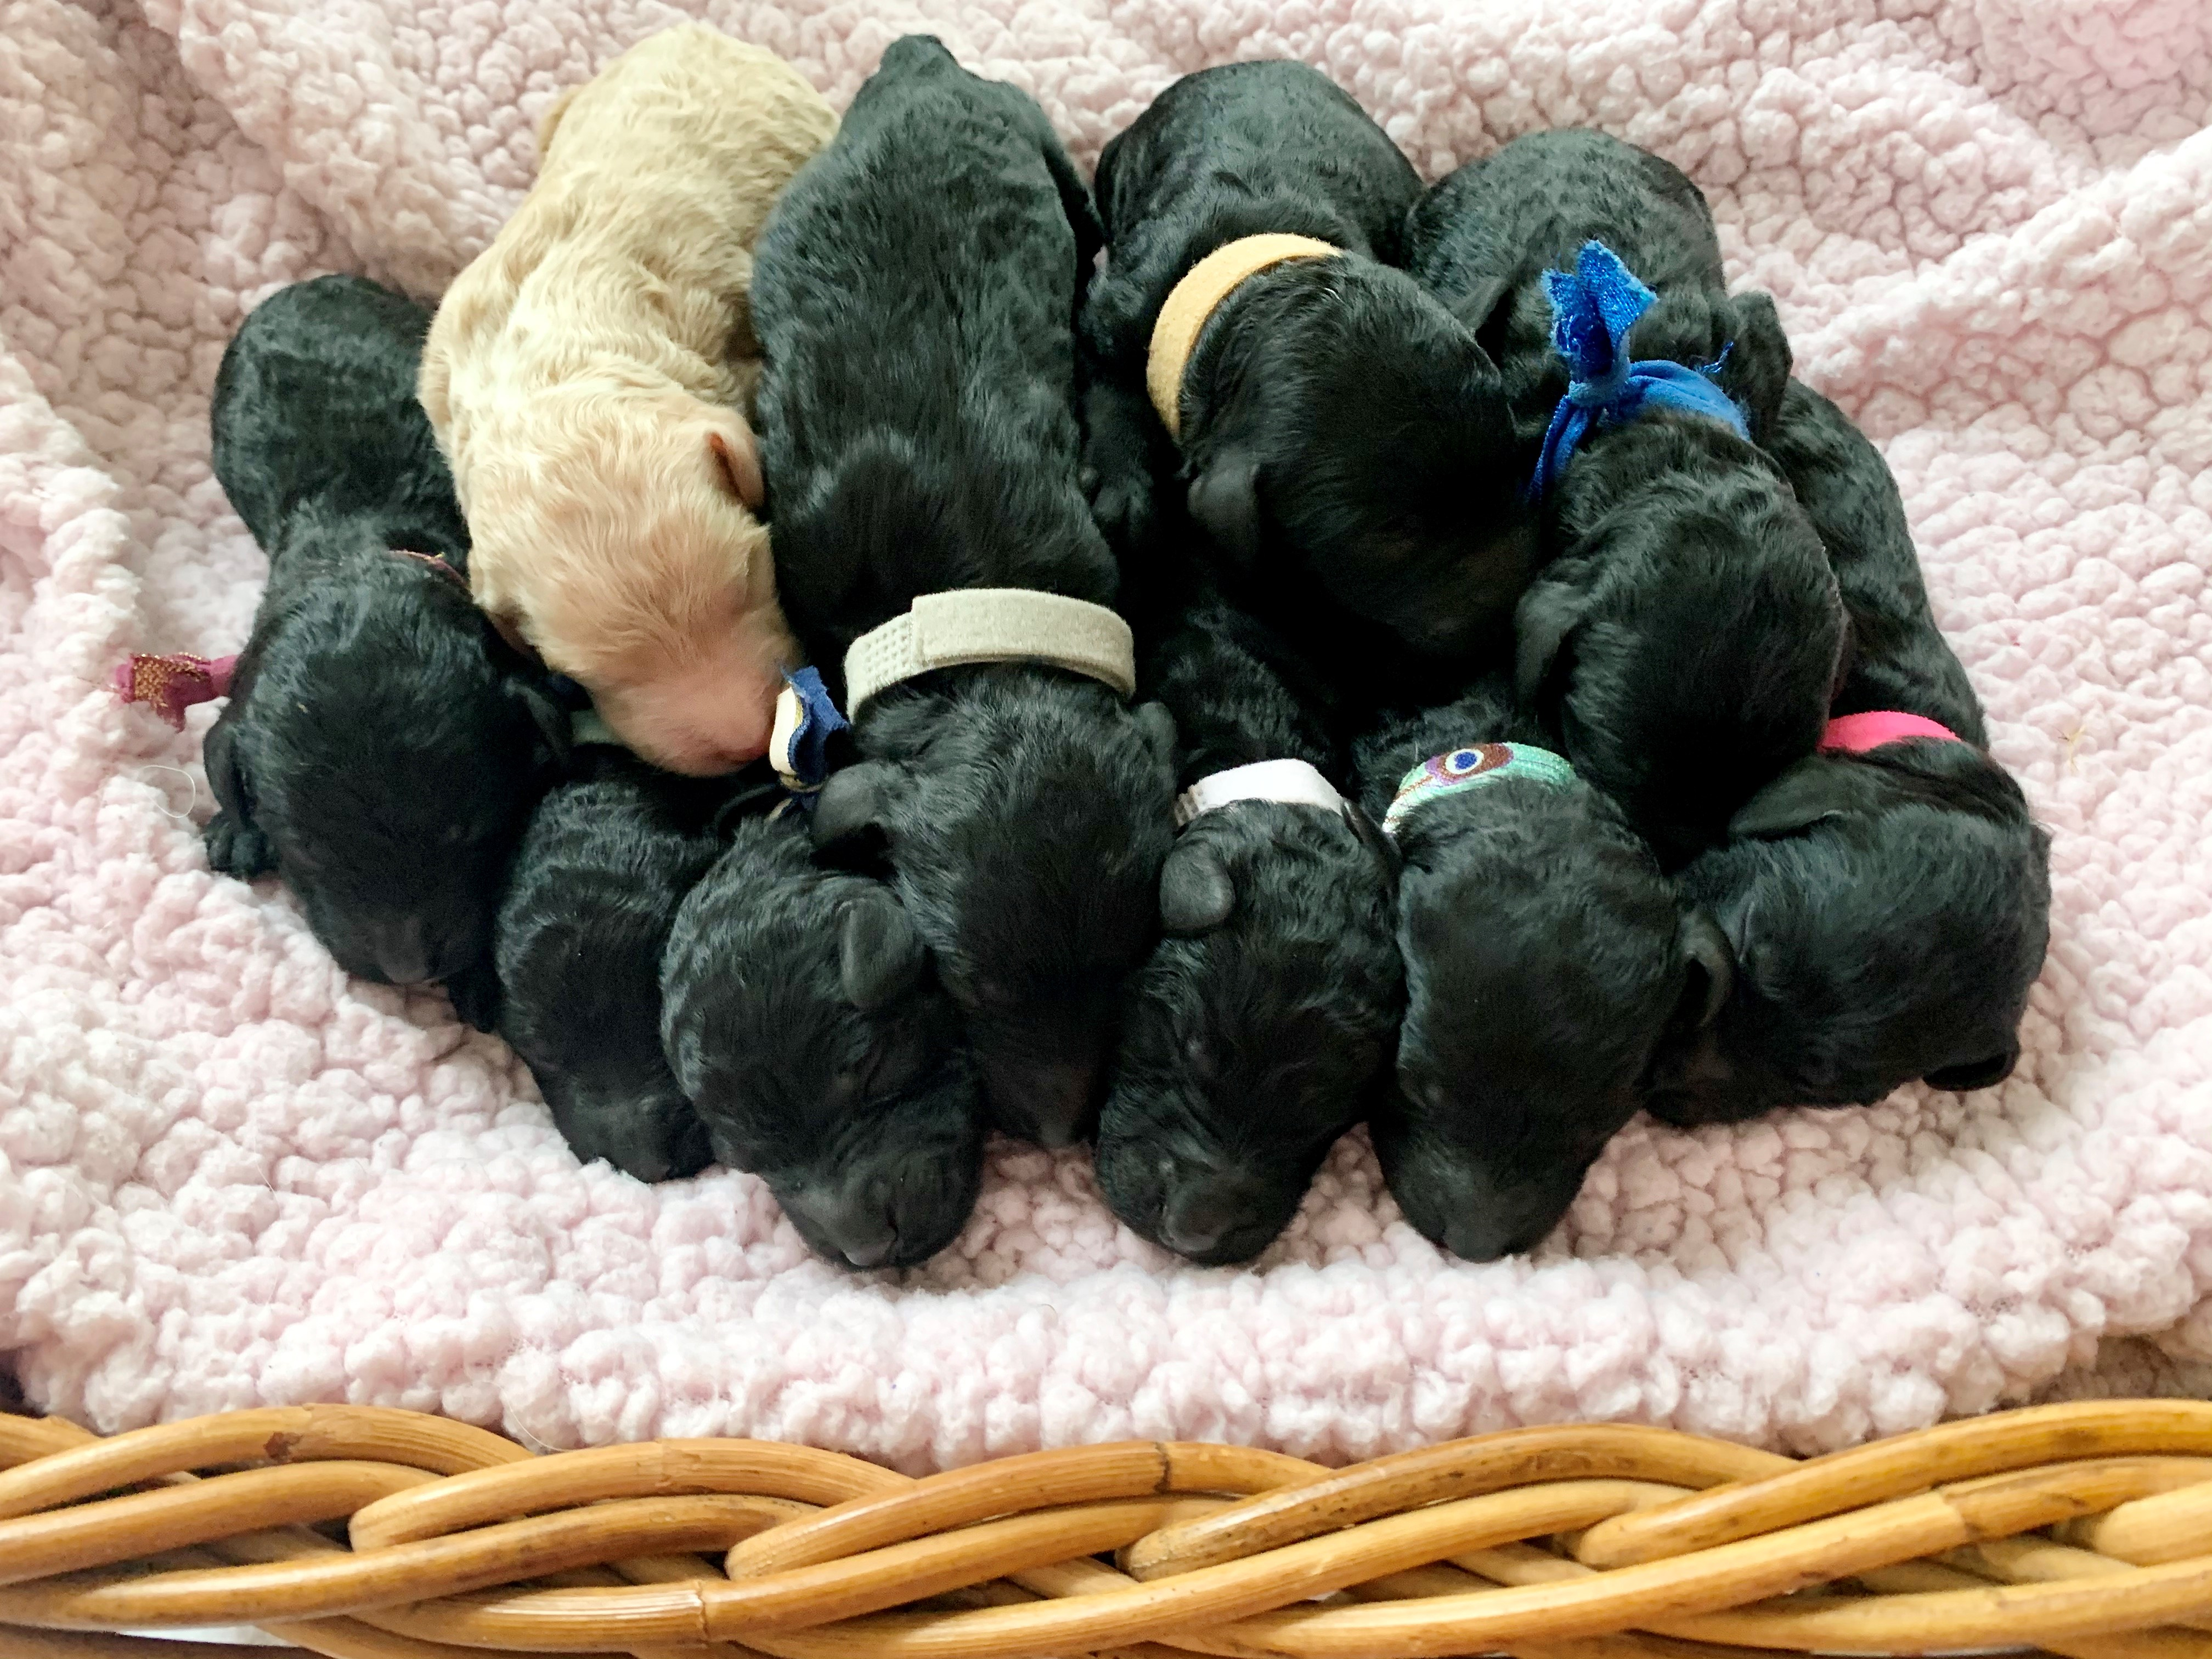 All 10 Babies in a Basket